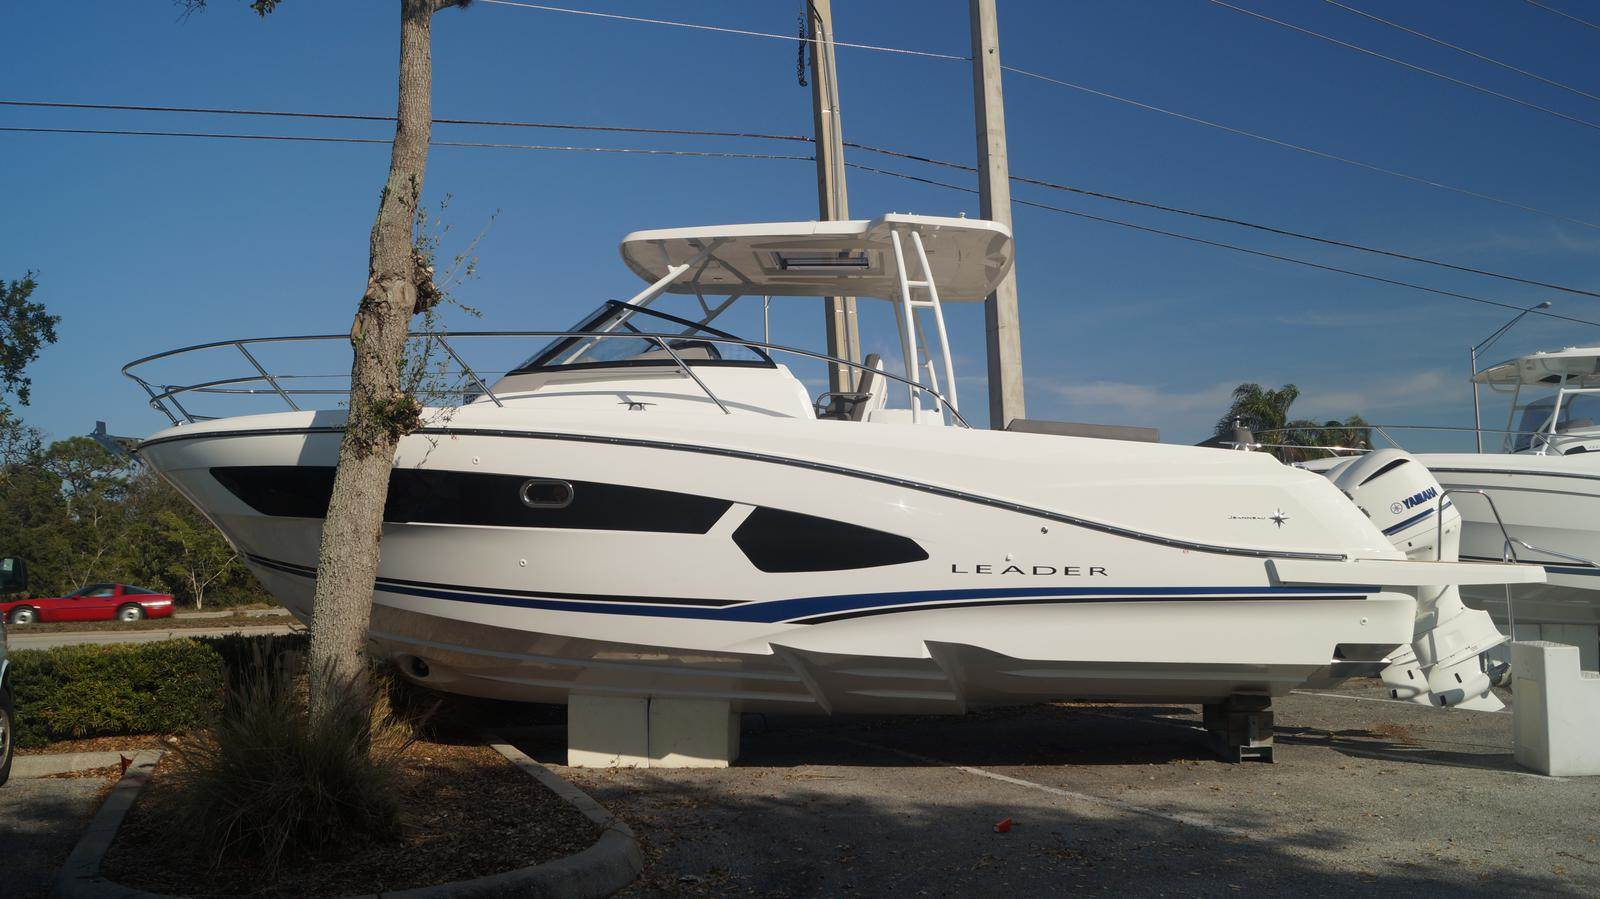 Jeanneau Boats |Powerboats For Sale| Sarasota, Florida